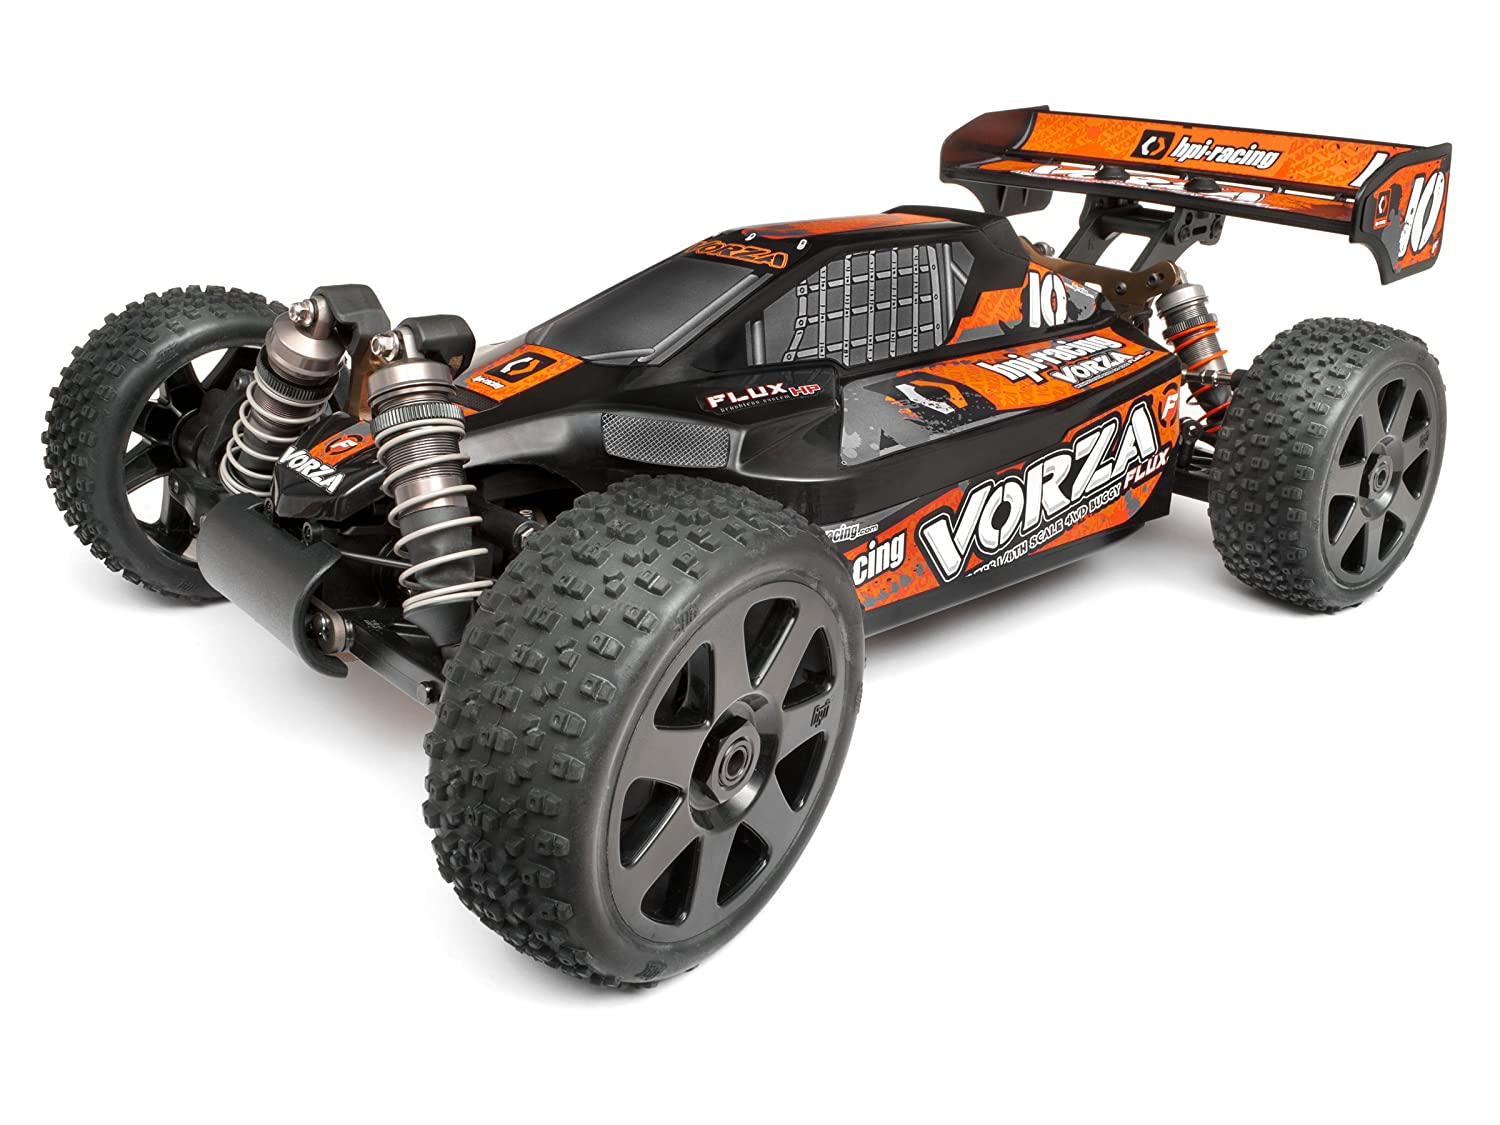 petrol remote control cars amazon with Worlds Fastest Remote Control Cars Out Of The Box on Worlds Fastest Remote Control Cars Out Of The Box further 2126214 additionally Abba Fancy Dress in addition 5018516 likewise 6005956.